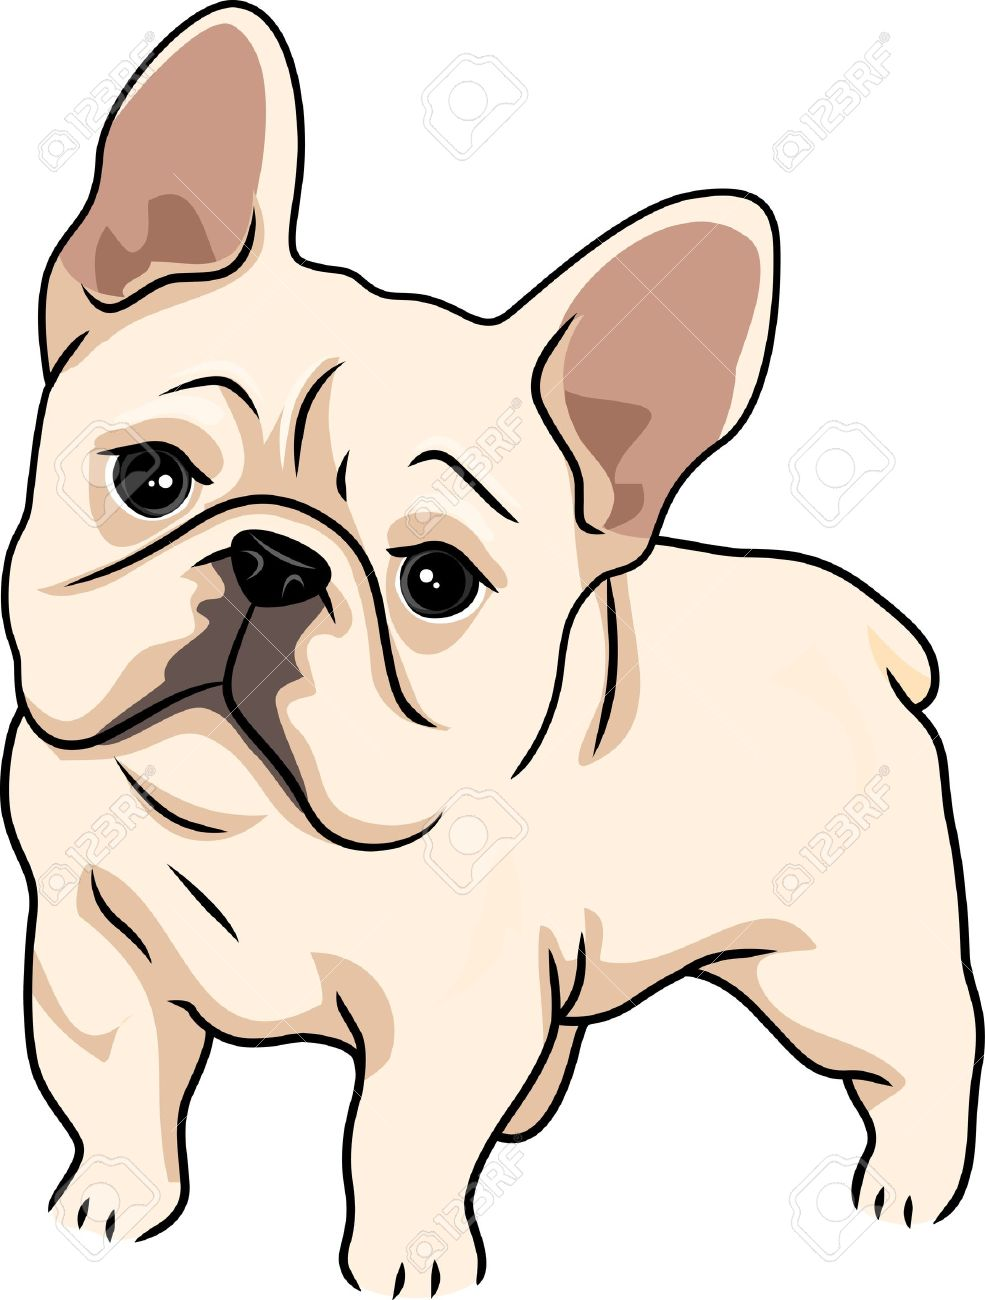 Cute bulldog clipart 6 » Clipart Station.